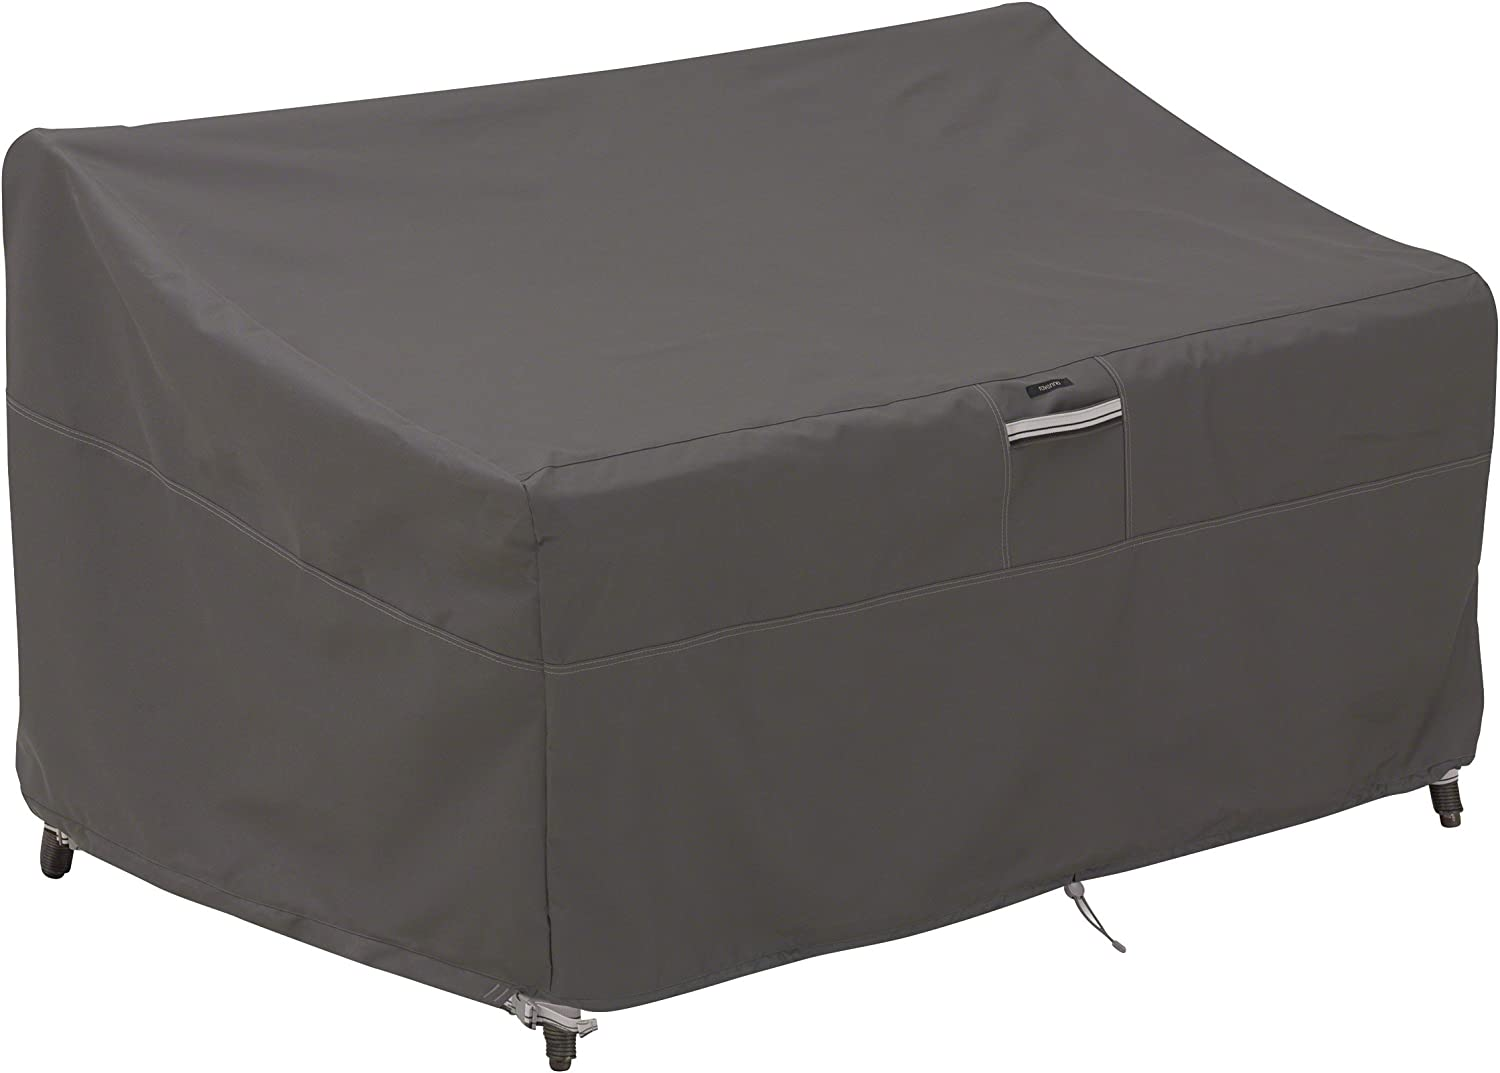 Amazon Com Classic Accessories Ravenna Water Resistant 76 Inch Deep Seated Patio Loveseat Cover Garden Outdoor